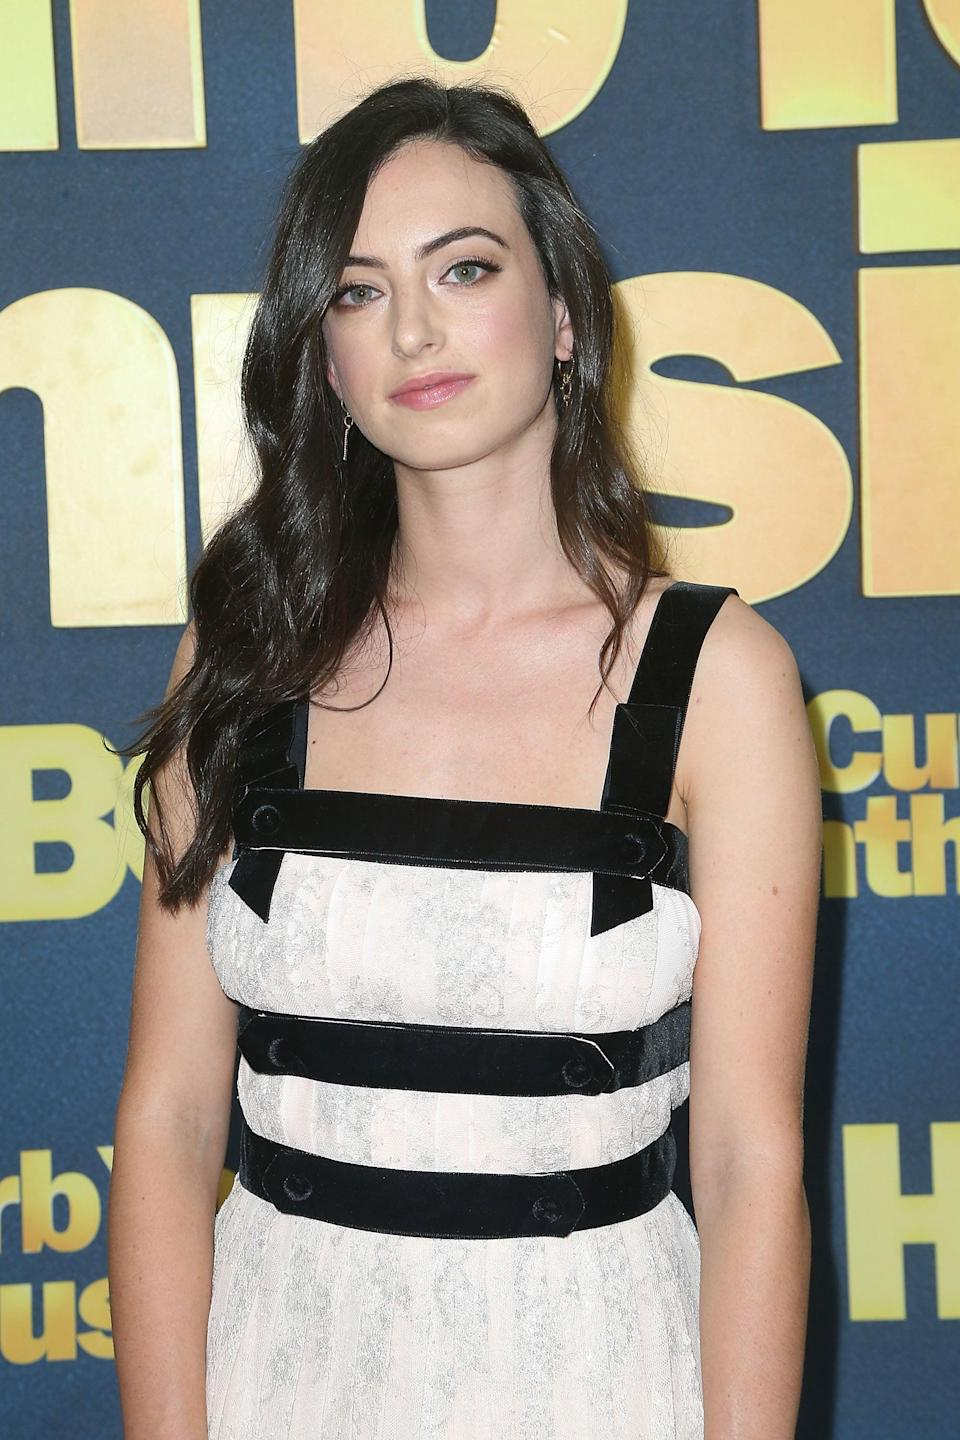 """<p>Also like her dad, <a href=""""http://www.latimes.com/entertainment-arts/books/story/2020-11-11/cazzie-david-essayist-on-no-one-asked-for-this-pete-davidson-nepotism"""" class=""""link rapid-noclick-resp"""" rel=""""nofollow noopener"""" target=""""_blank"""" data-ylk=""""slk:Cazzie is highly neurotic and constantly anxious"""">Cazzie is highly neurotic and constantly anxious</a>, which is a problem that's plagued Cazzie her whole life. """"I give people this anxiety test as a joke, because anxiety has become such a trend, and it deeply annoys me,"""" she explained to the <strong>Los Angeles Times</strong>. """"I ask them if they had anxiety when Clinton or Obama was president. Have you taken a nap in the last two years? Do you like roller coasters? Do you like scary movies? There's a difference between having stress and having an anxiety disorder, and that's never feeling safe or comfortable or like the rug is gonna be pulled out from under you at any second.""""</p>"""